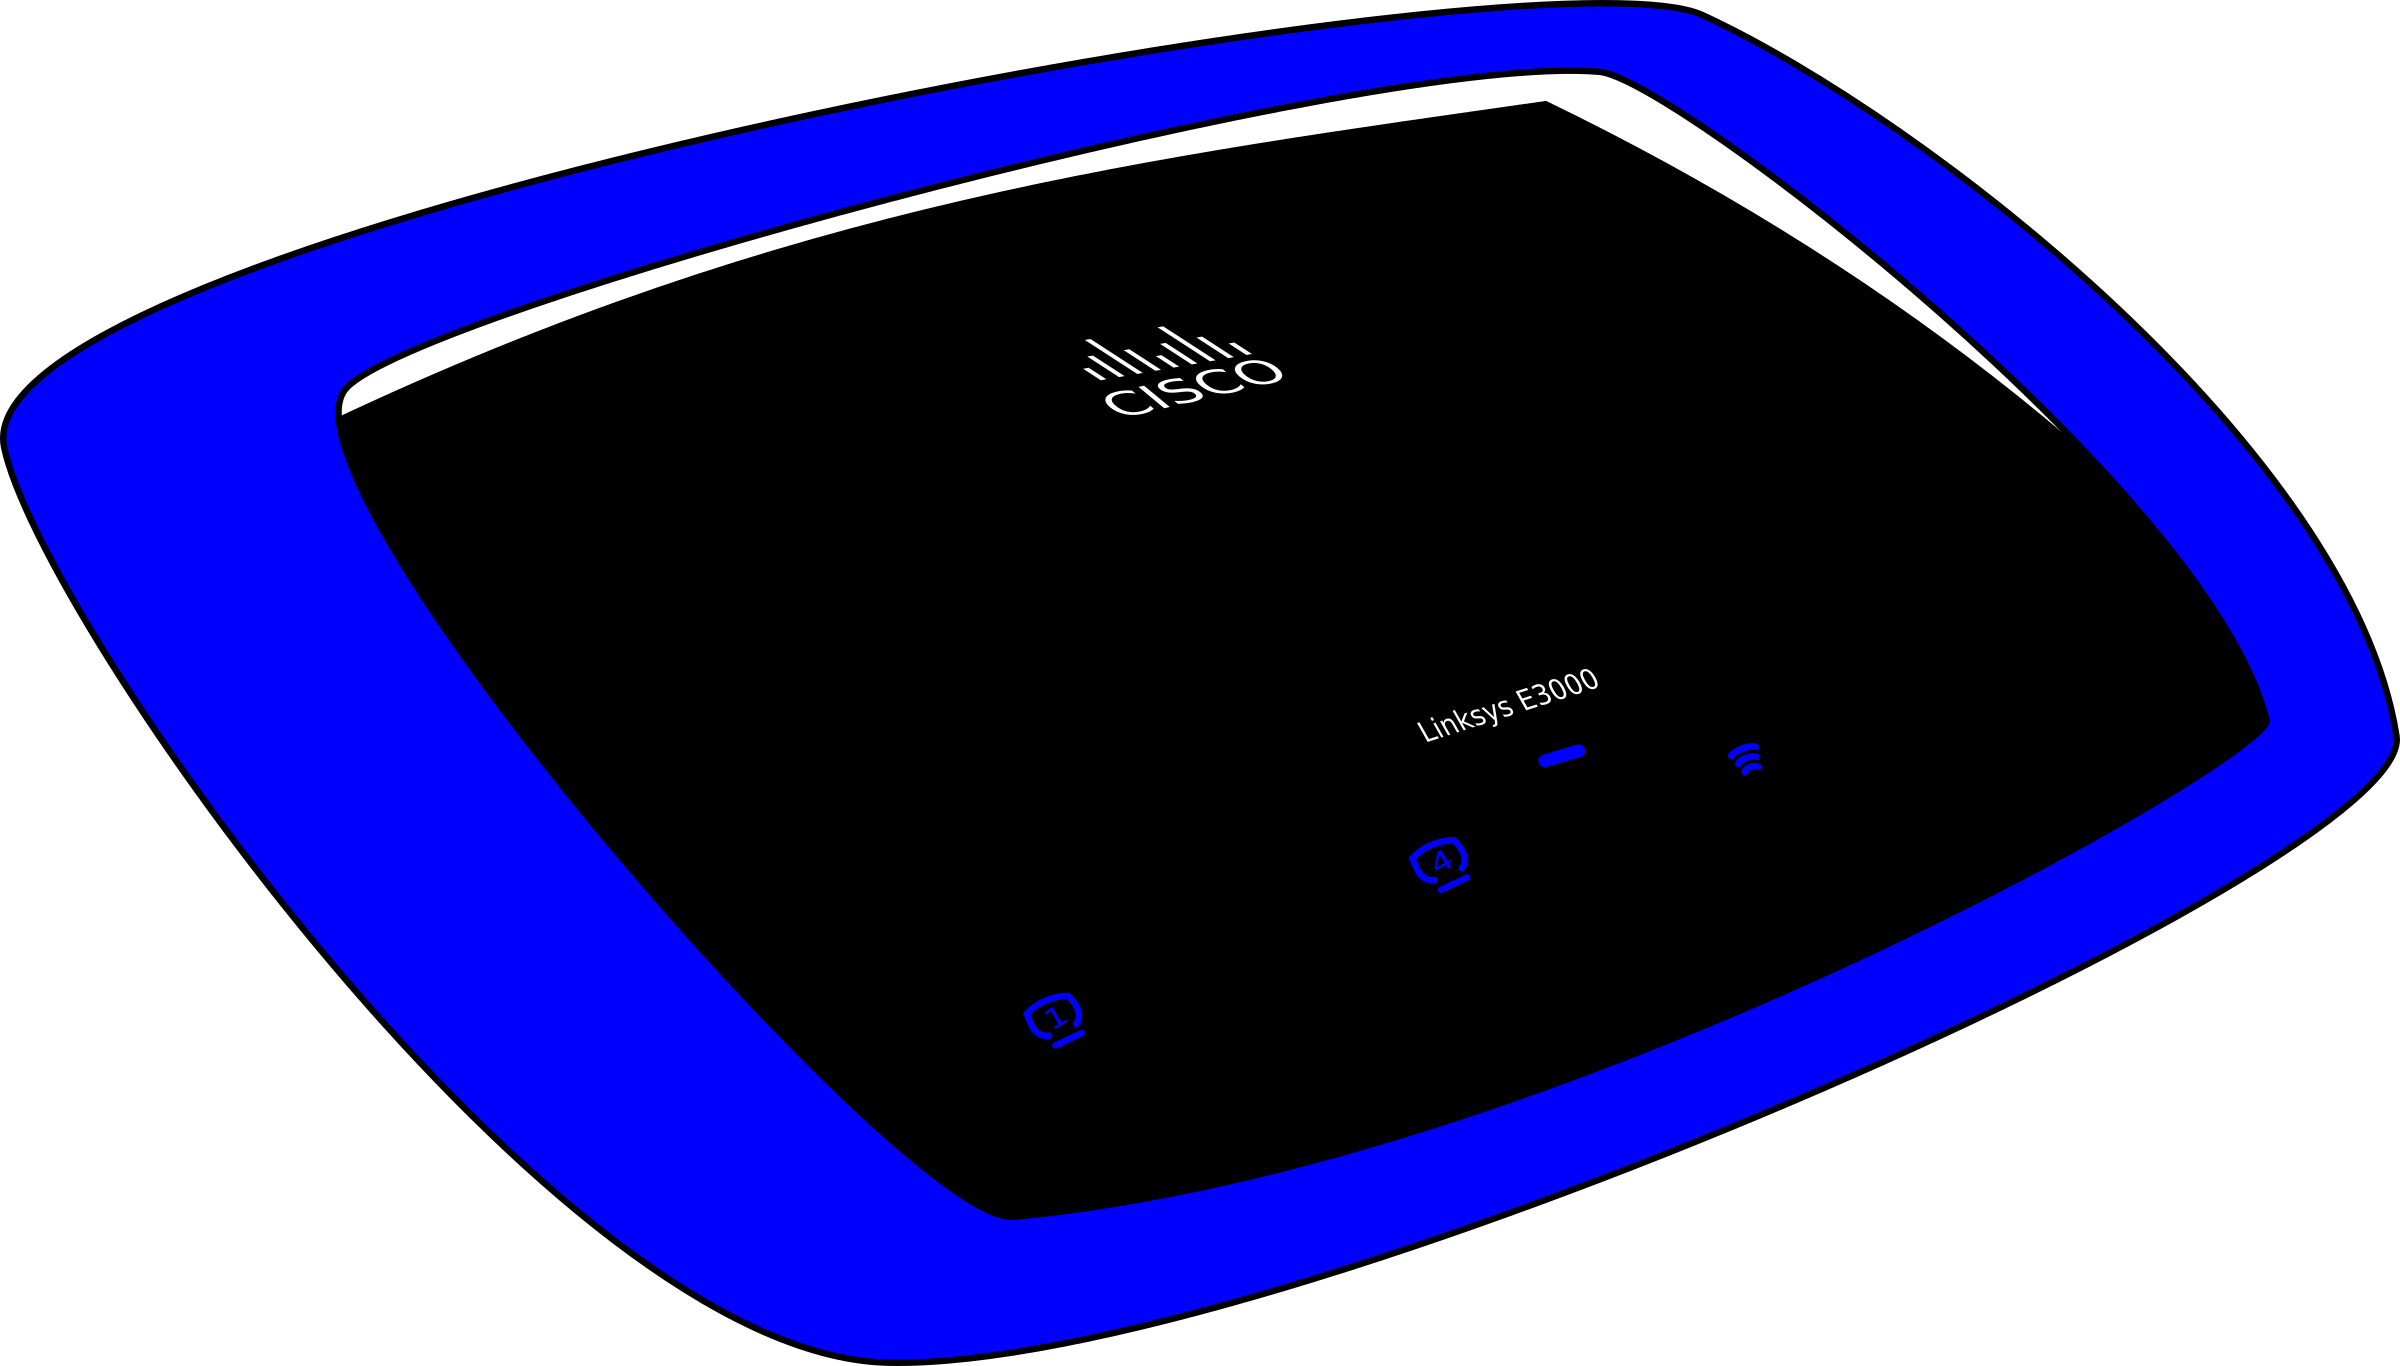 Cisco Linksys E3000 wireless router by jjl